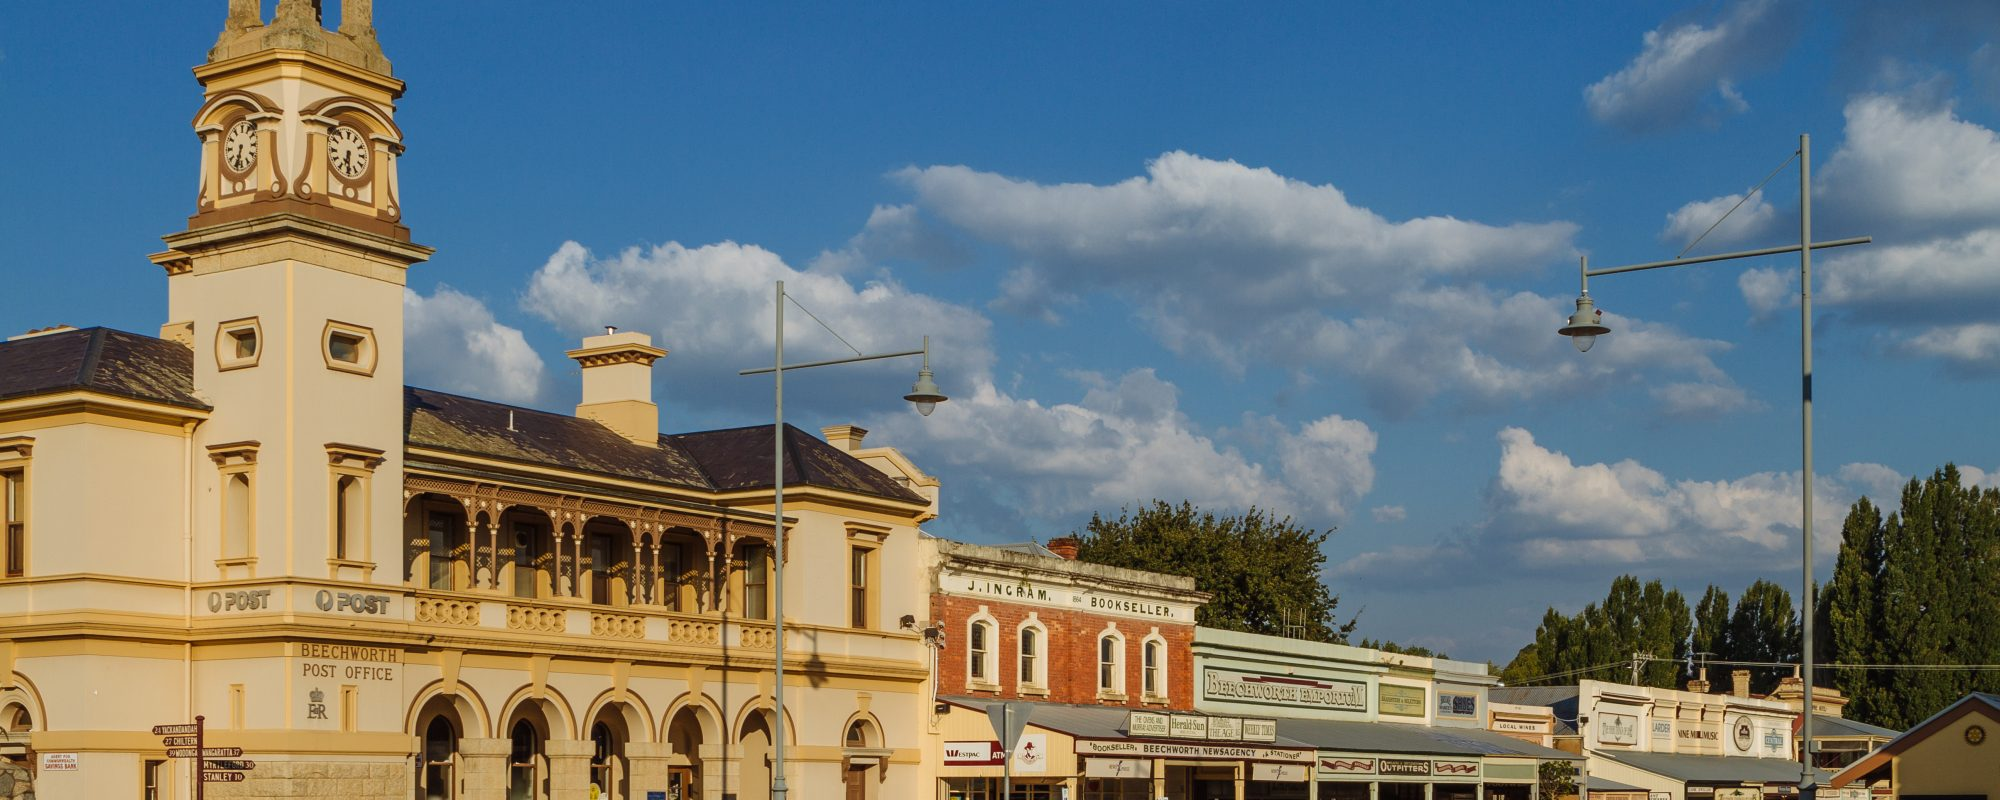 Beechworth's historic streetscape